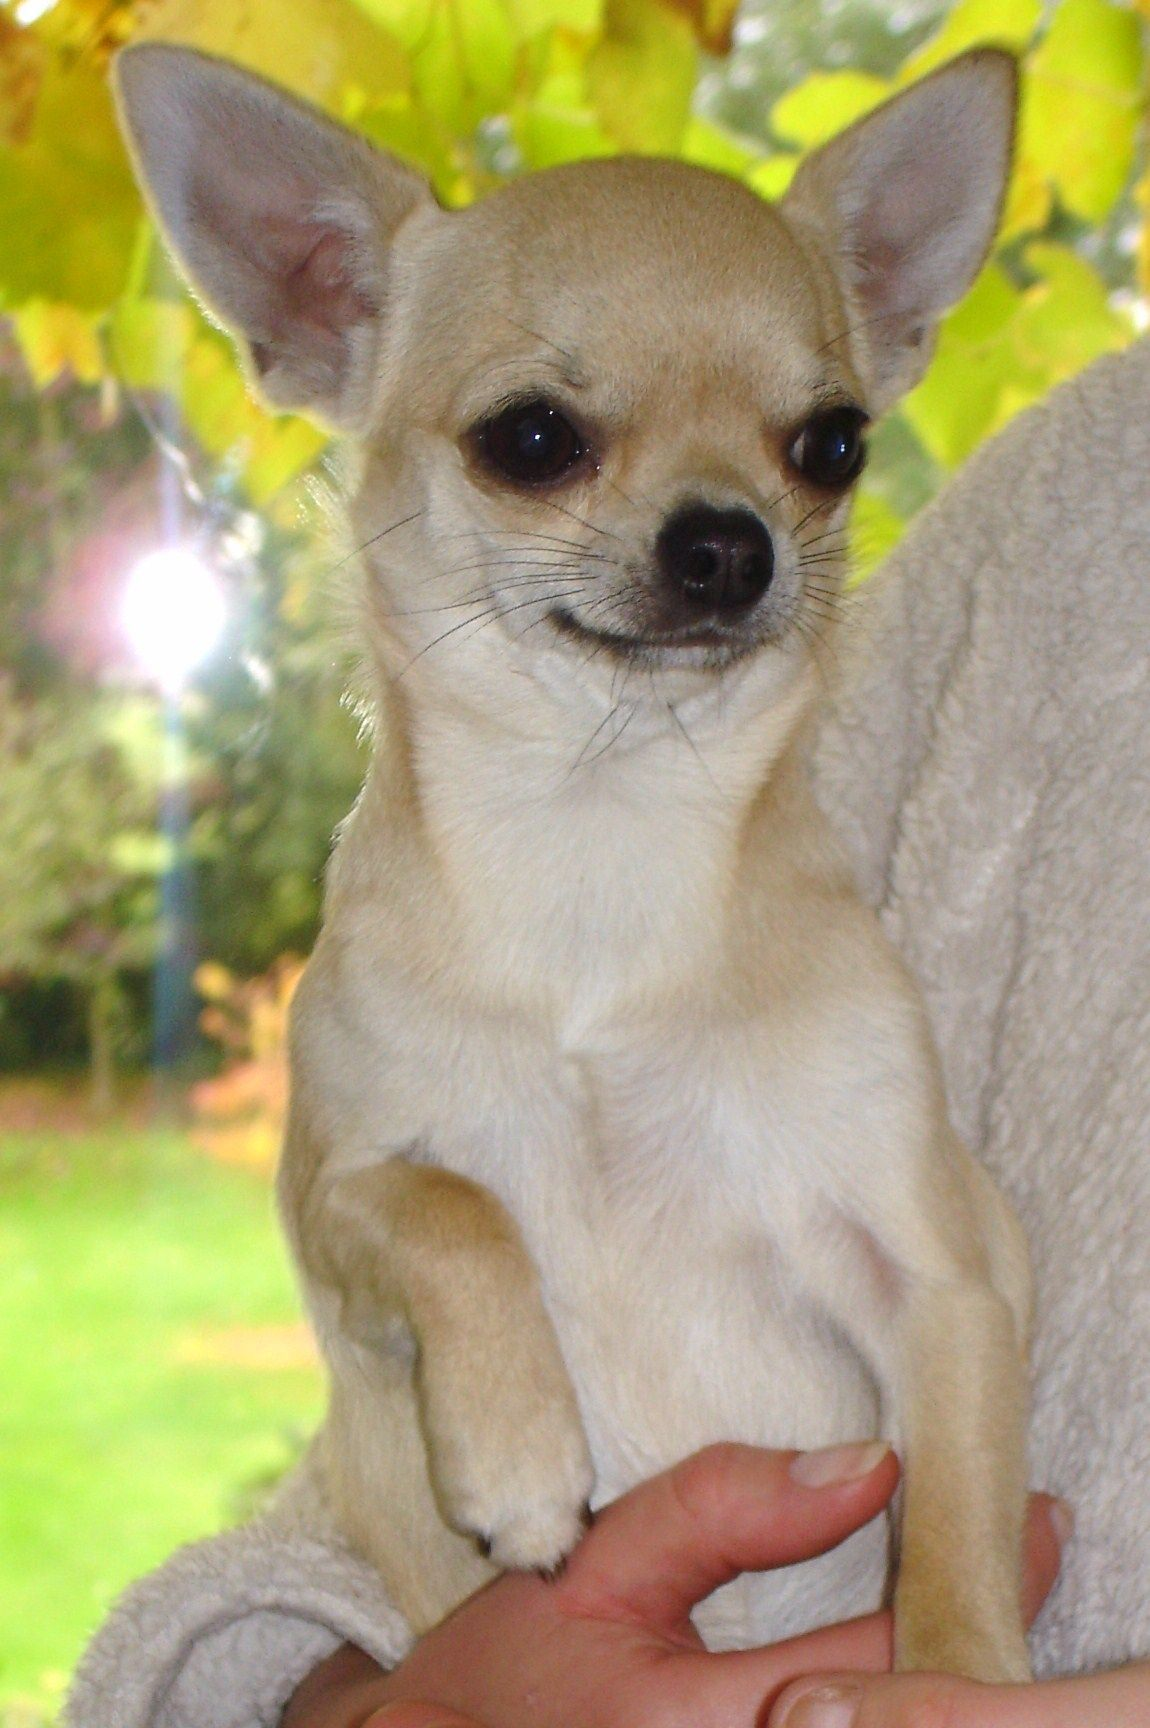 Pictures Of Chihuahuas Chihuahua Dog Breed Puppies Chihuahua